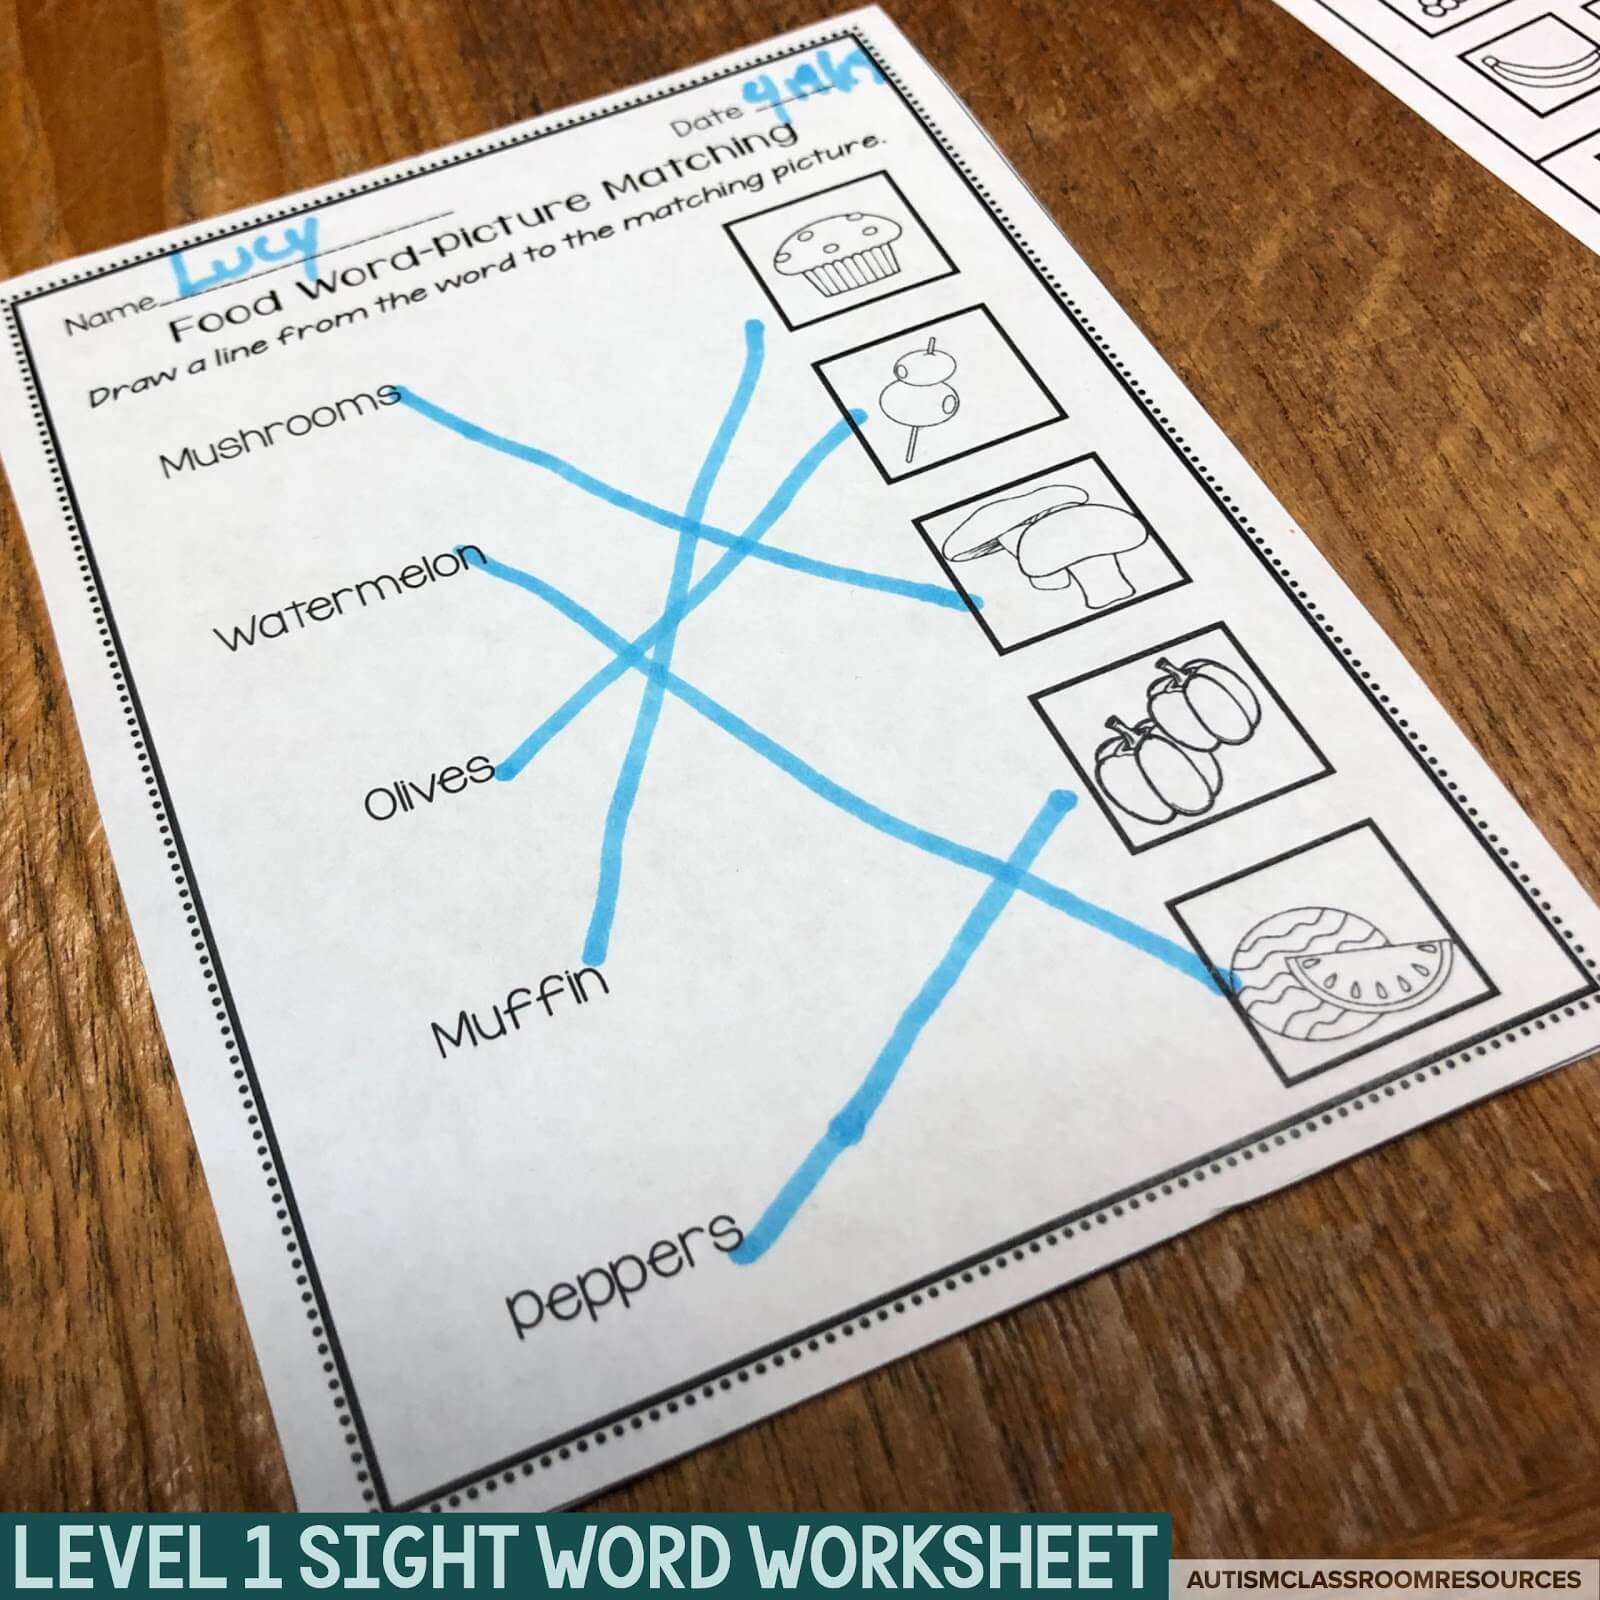 Level 1 sight word worksheets are designed to just practice matching common functional sight words to their corresponding pictures. Text and pictures are clear and make for easy photocopying for prep. Find out more about how these can help with life skills functional reading with your students in this post.